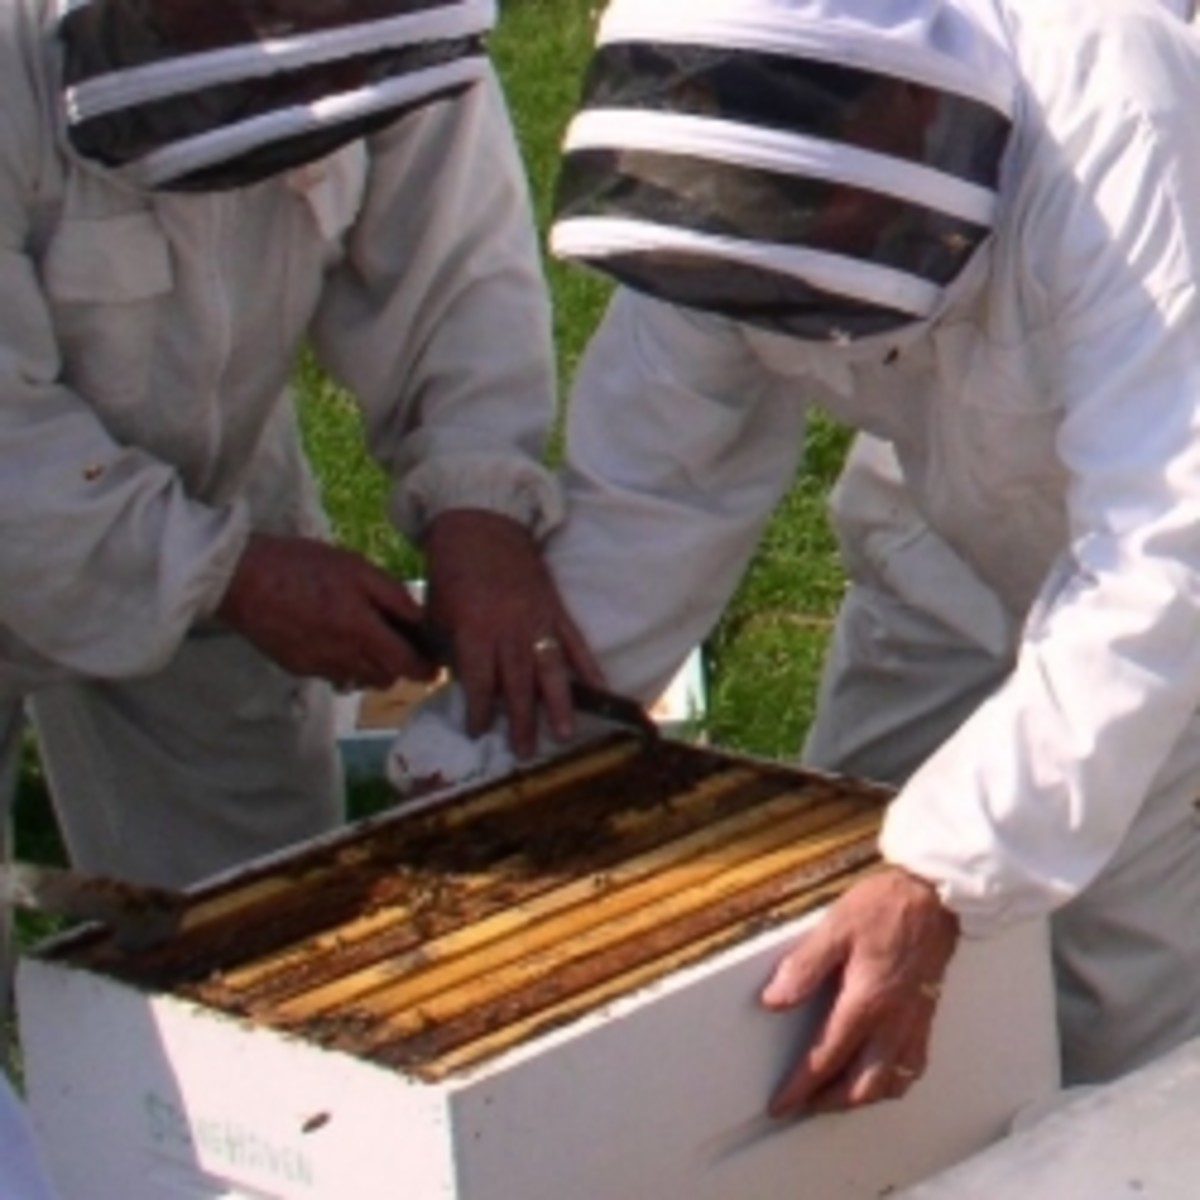 Spring Beekeeping Field Day, photo used here by permission of the photographer